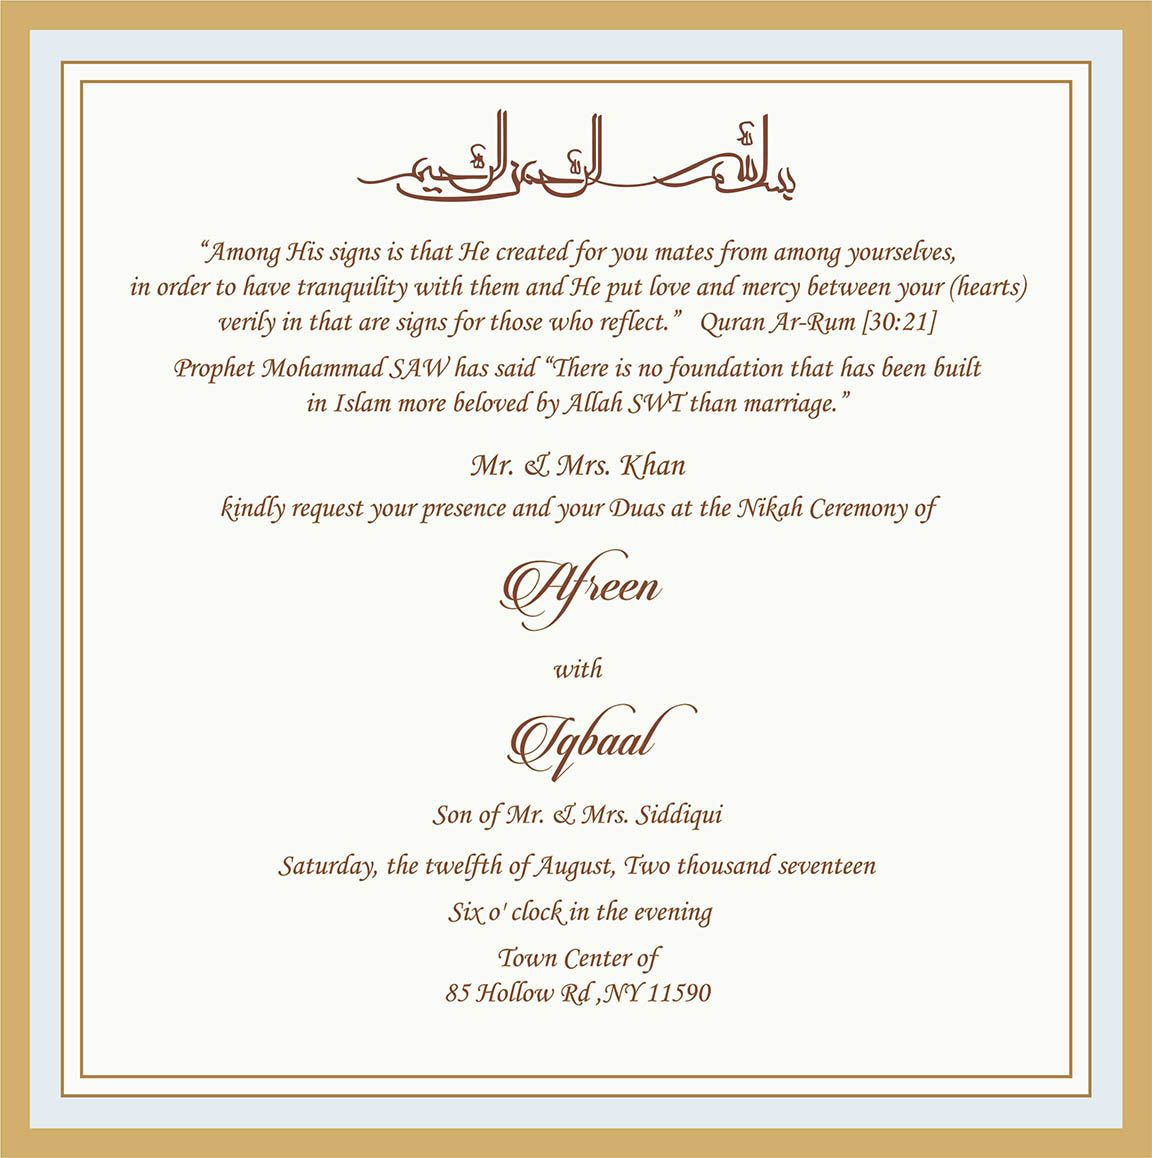 Wedding Invitation Wording For Muslim Wedding Ceremony Muslim Wedding Invitations Wedding Card Wordings Muslim Wedding Cards